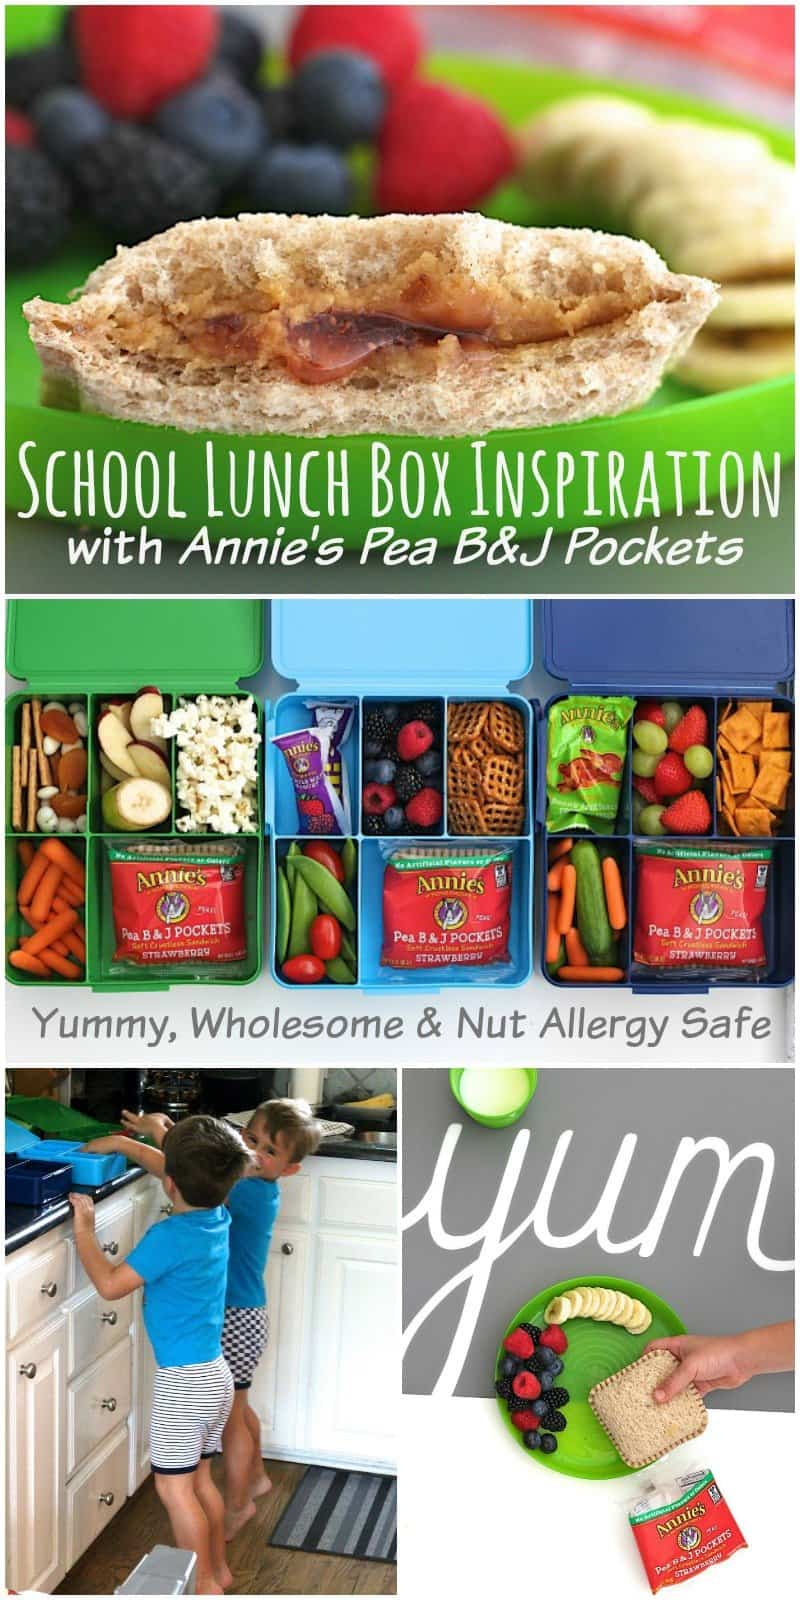 School Lunch Box Inspiration with Annie's Pea B&J Pockets